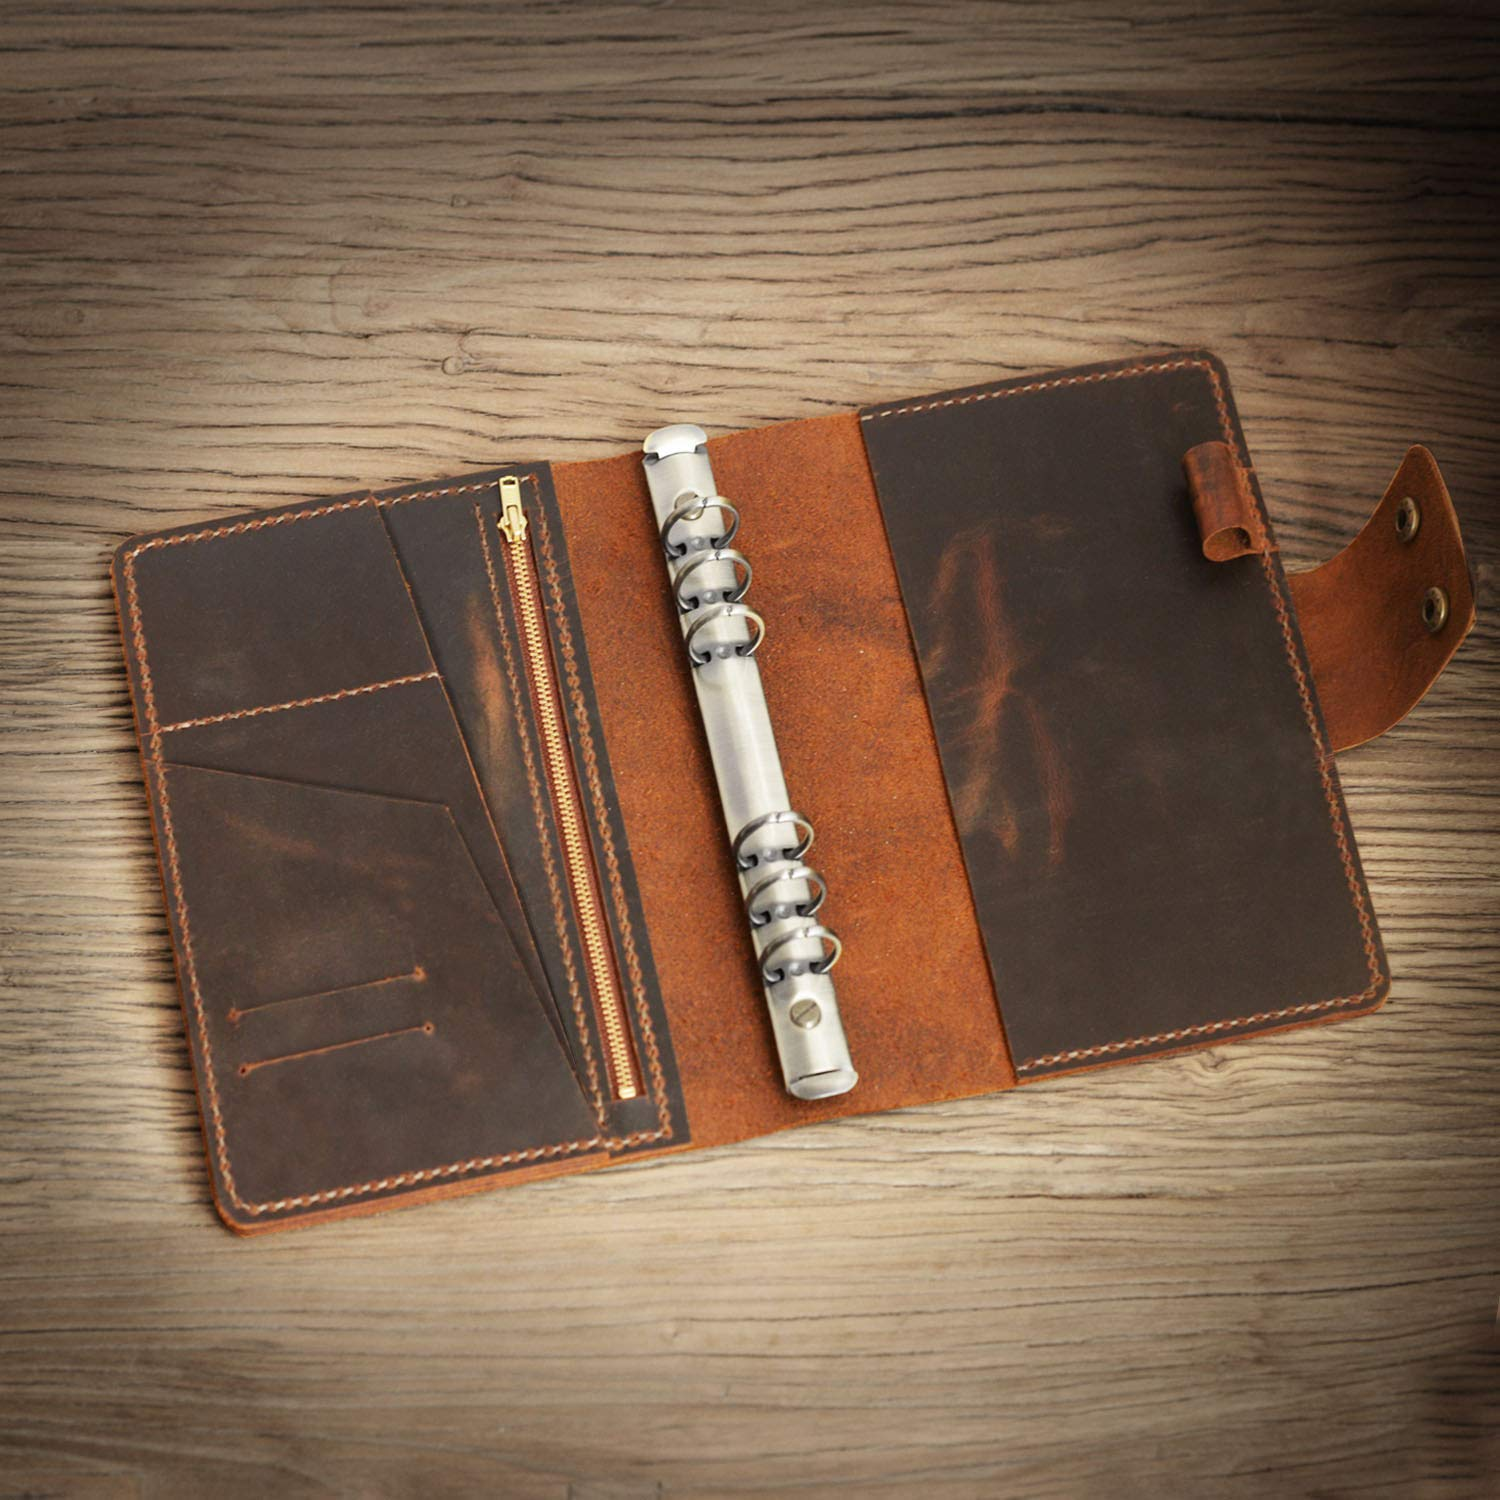 Personalized Size A5 Leather Refillable binder Vintage Leather Organizer Planner travelers Journal sketchbook 706